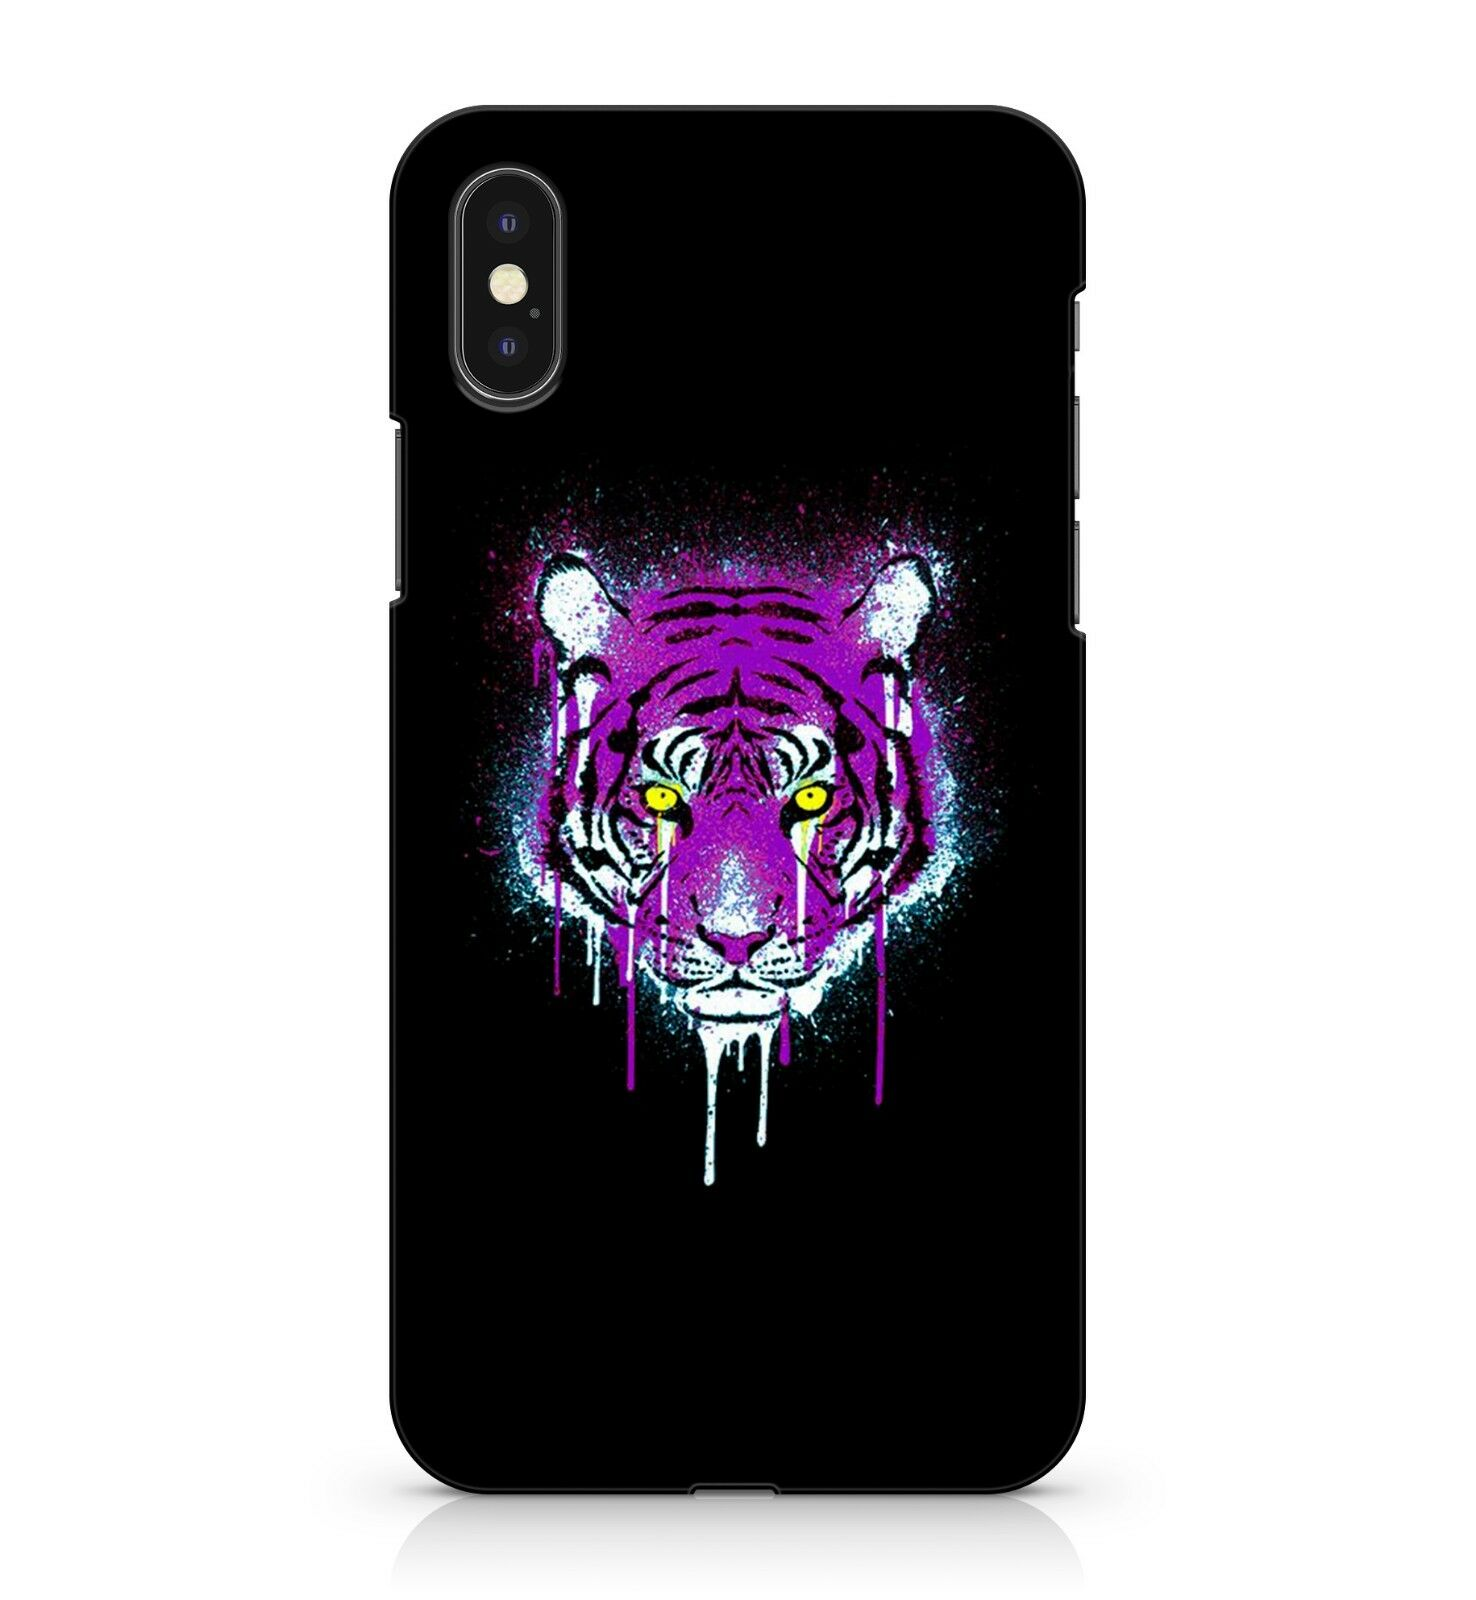 uk availability 3c968 1f0d8 Details about Powerful White Tiger Yellow Eyed Dripping Acrylic Purple  Paint Phone Case Cover